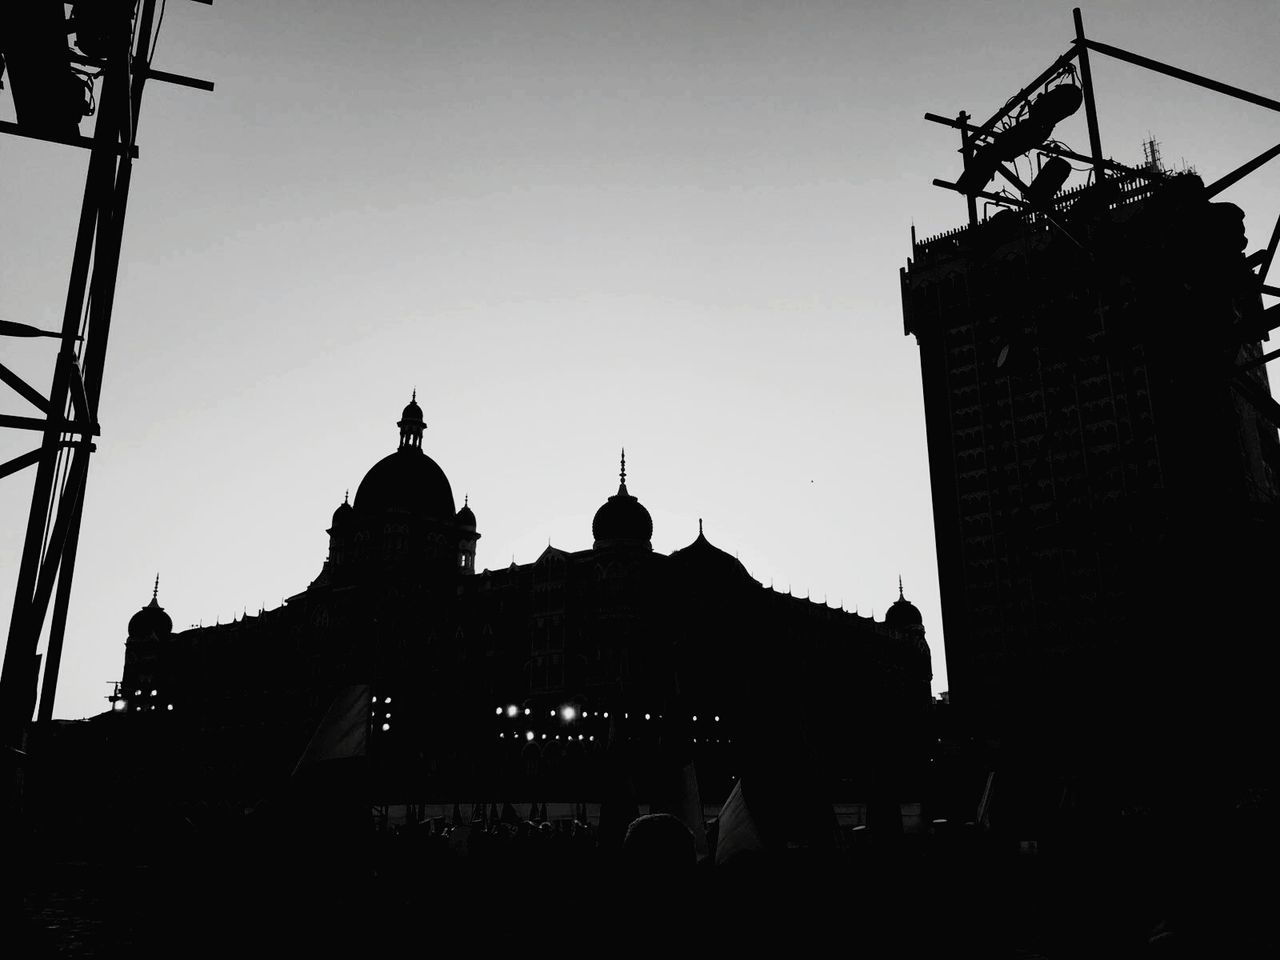 architecture, silhouette, built structure, building exterior, history, outdoors, city, clear sky, sky, no people, day